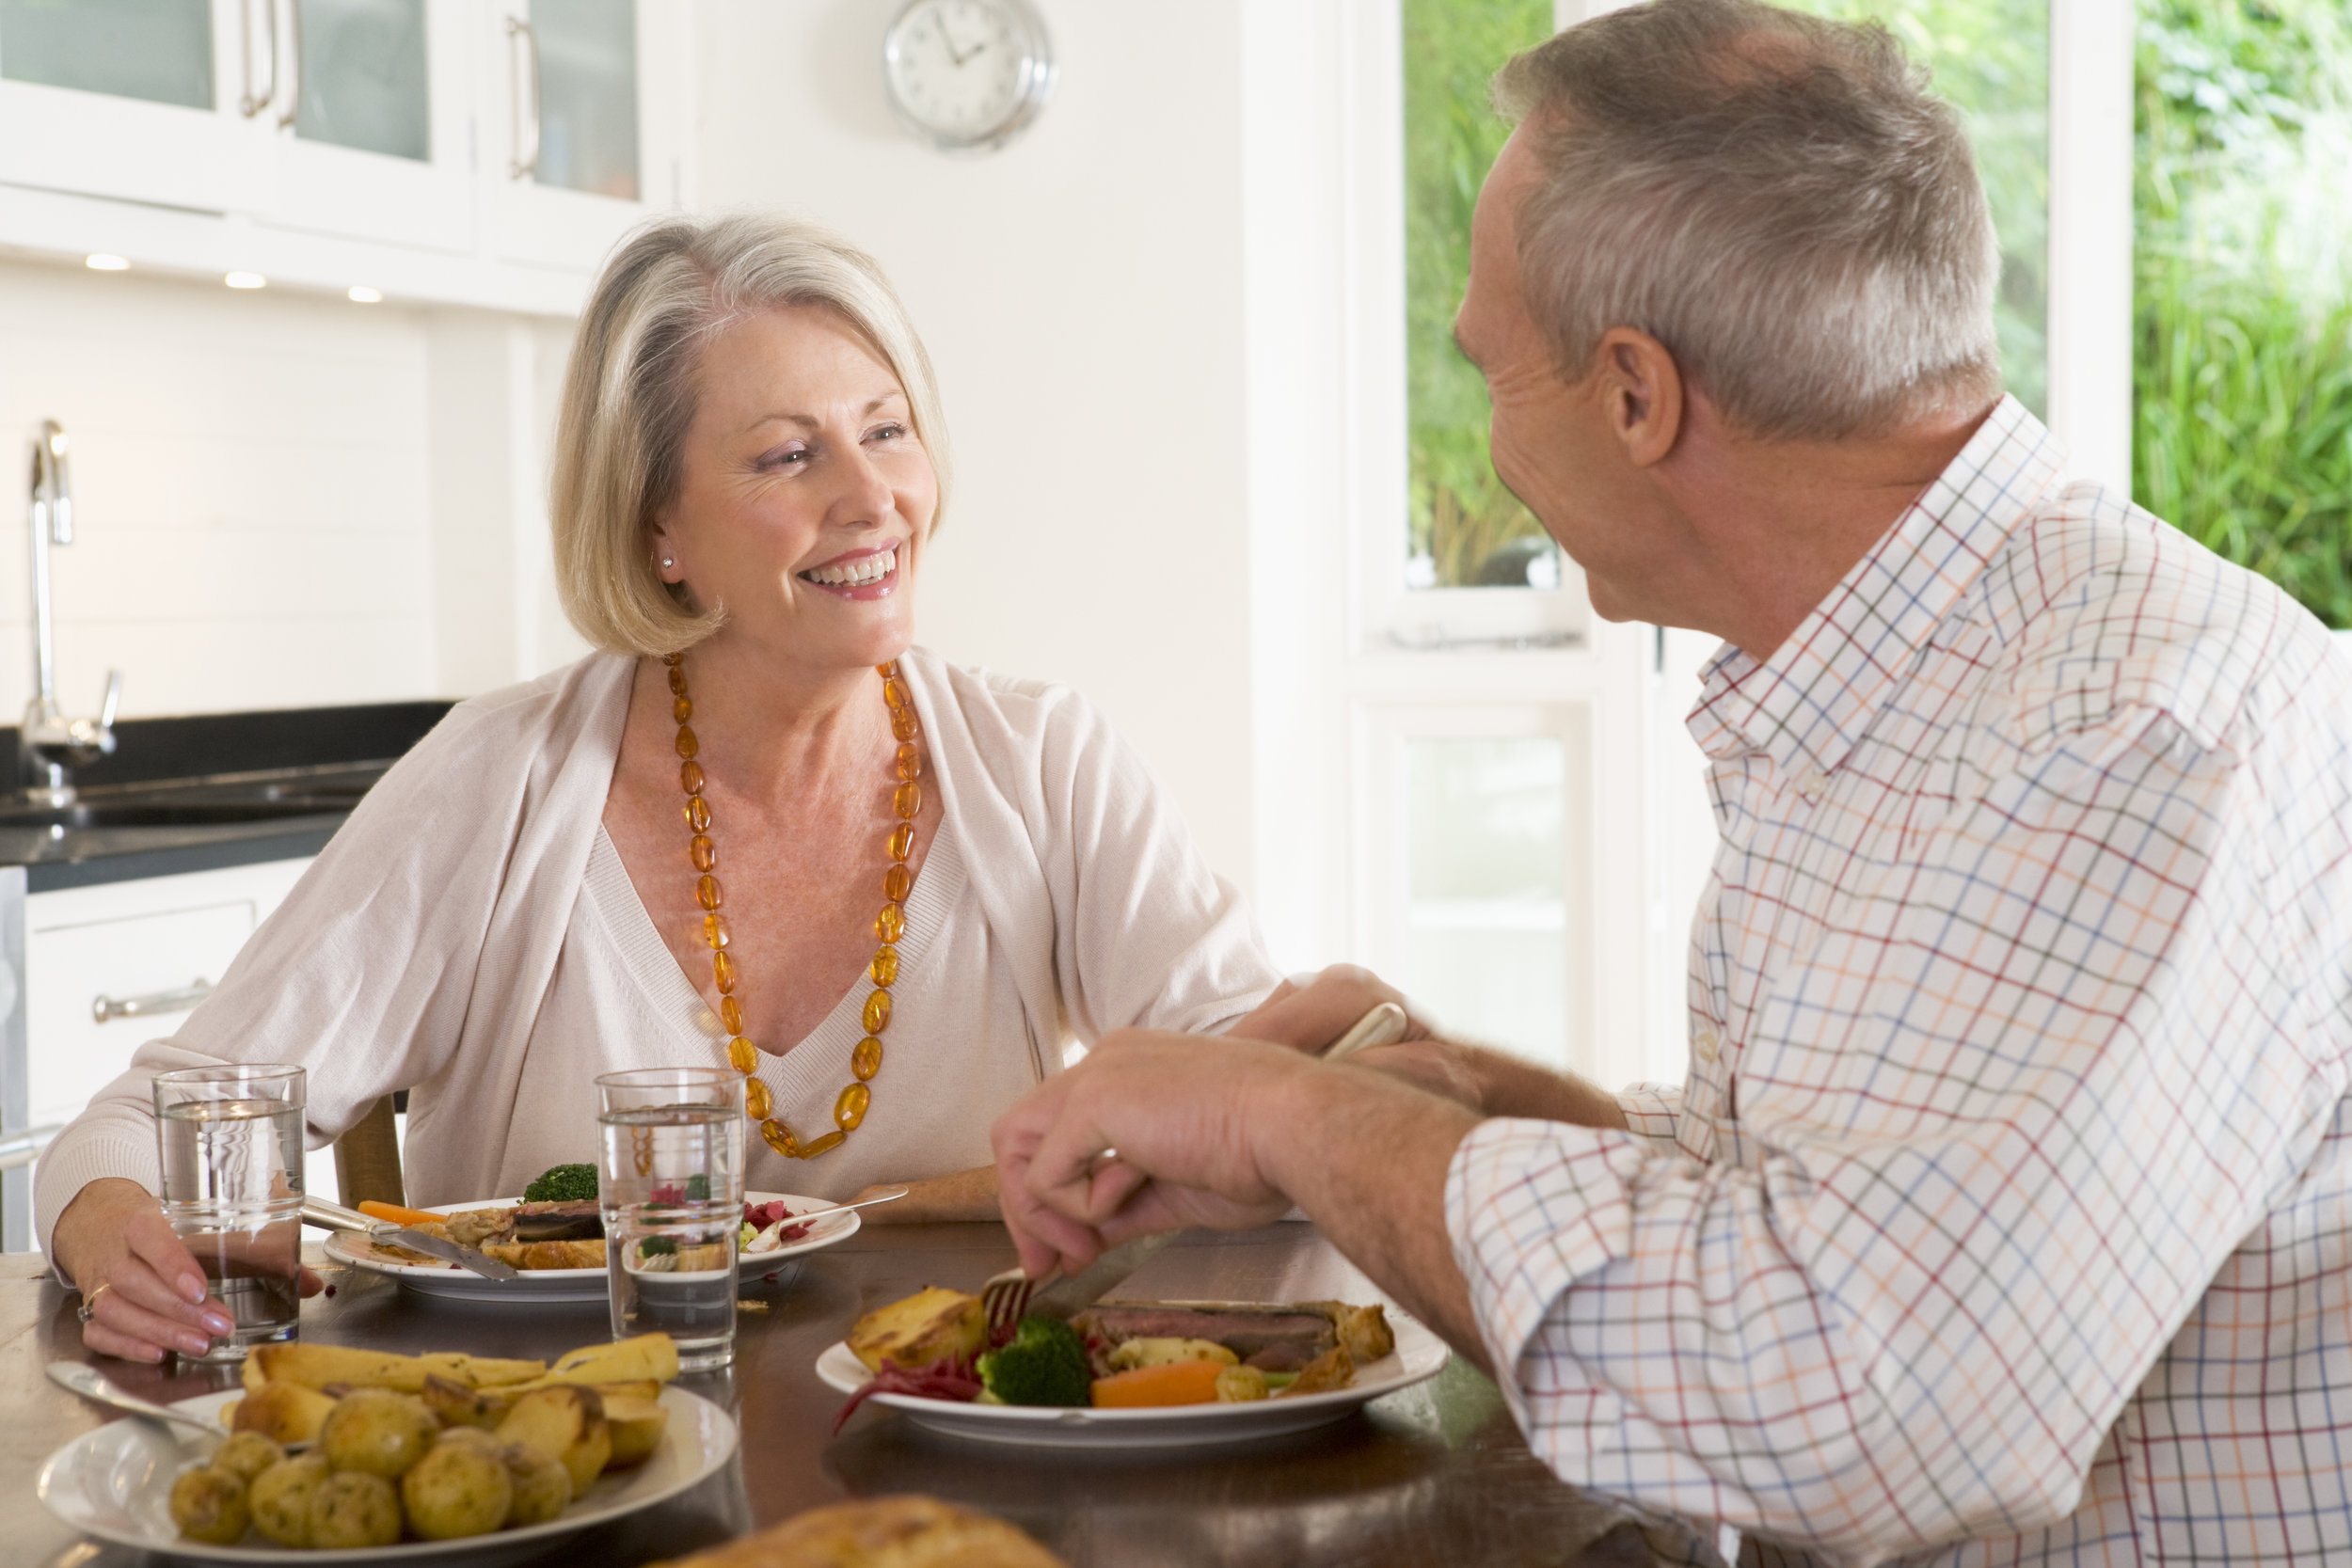 clients receive the benefits of companionship along with their meals